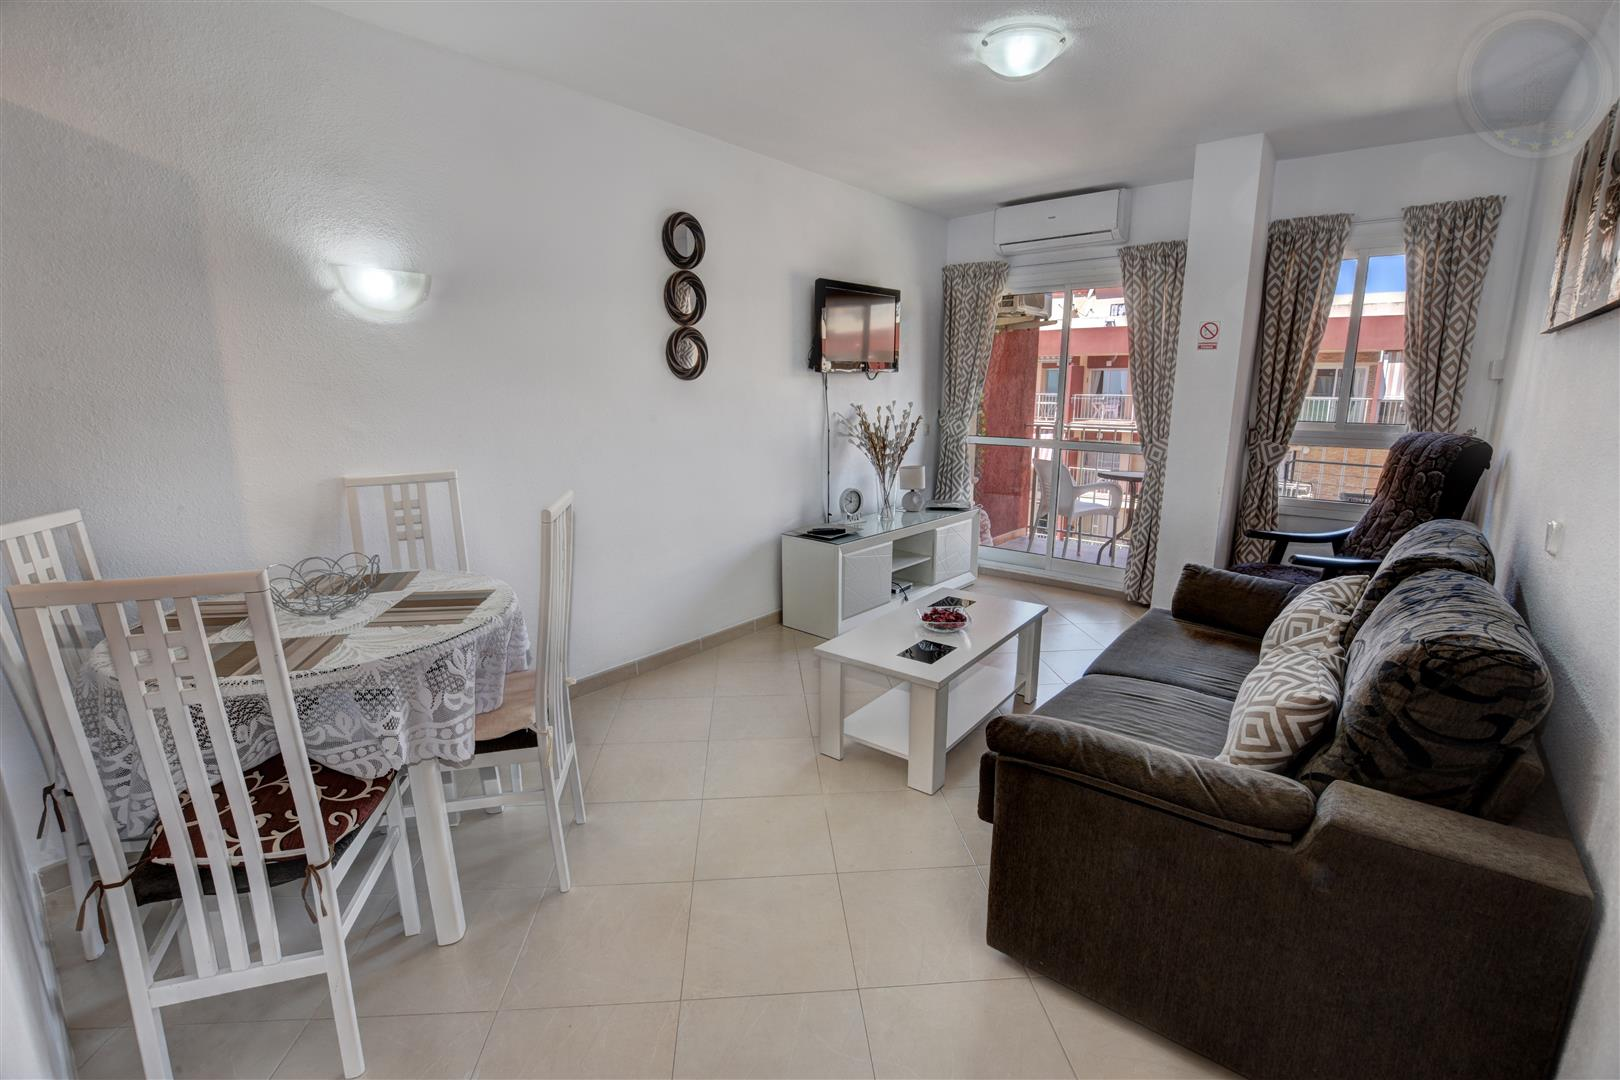 Apartment for Sale in Minerva - Lounge